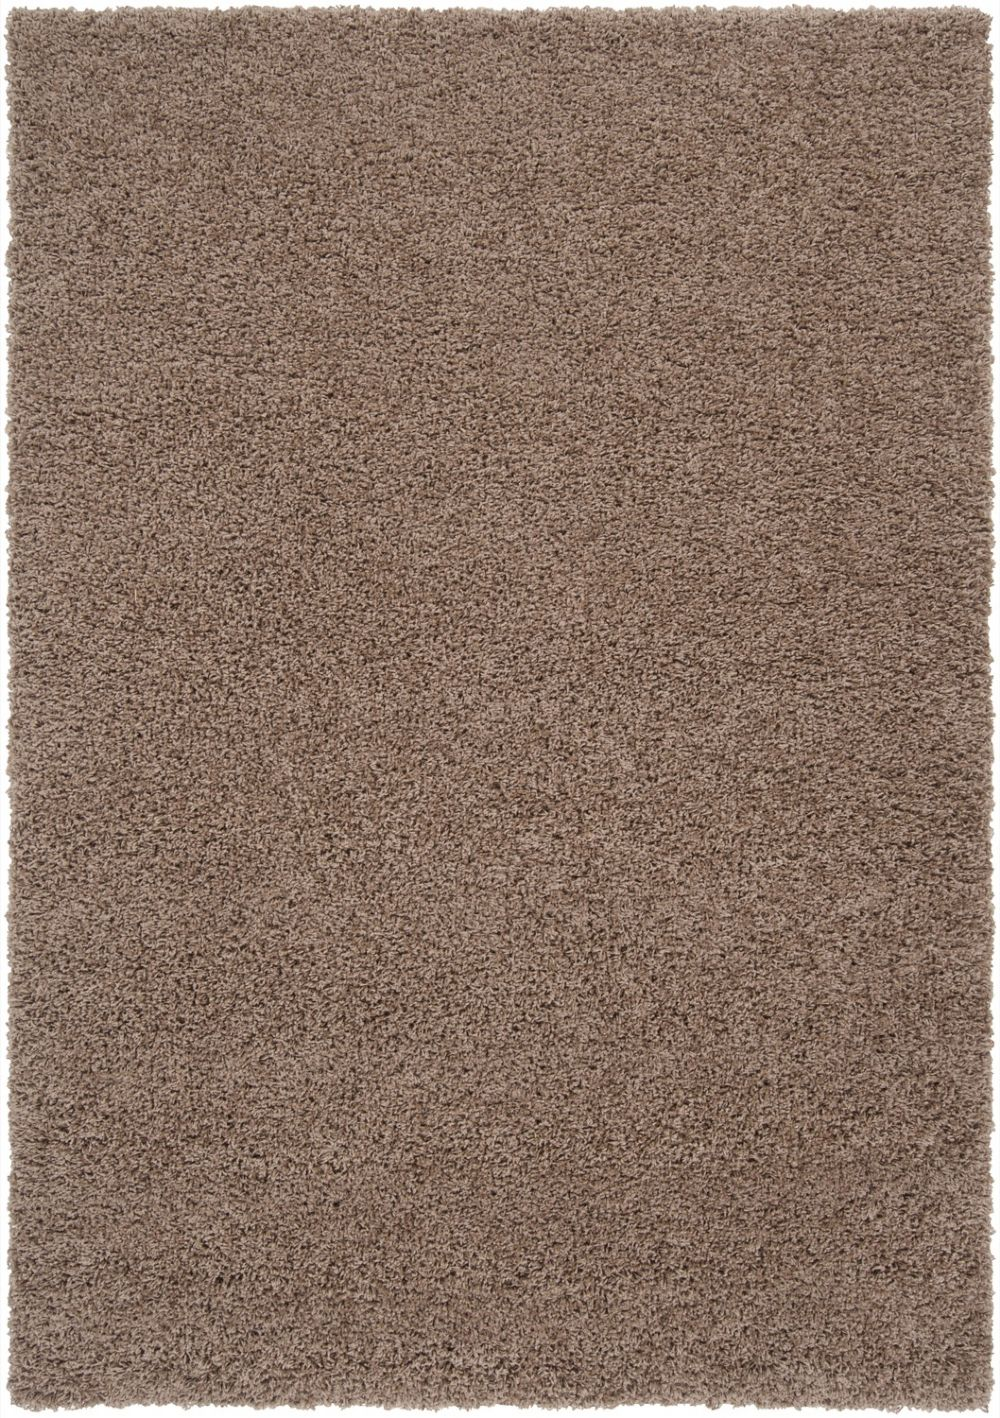 surya galaxy shag plush area rug collection